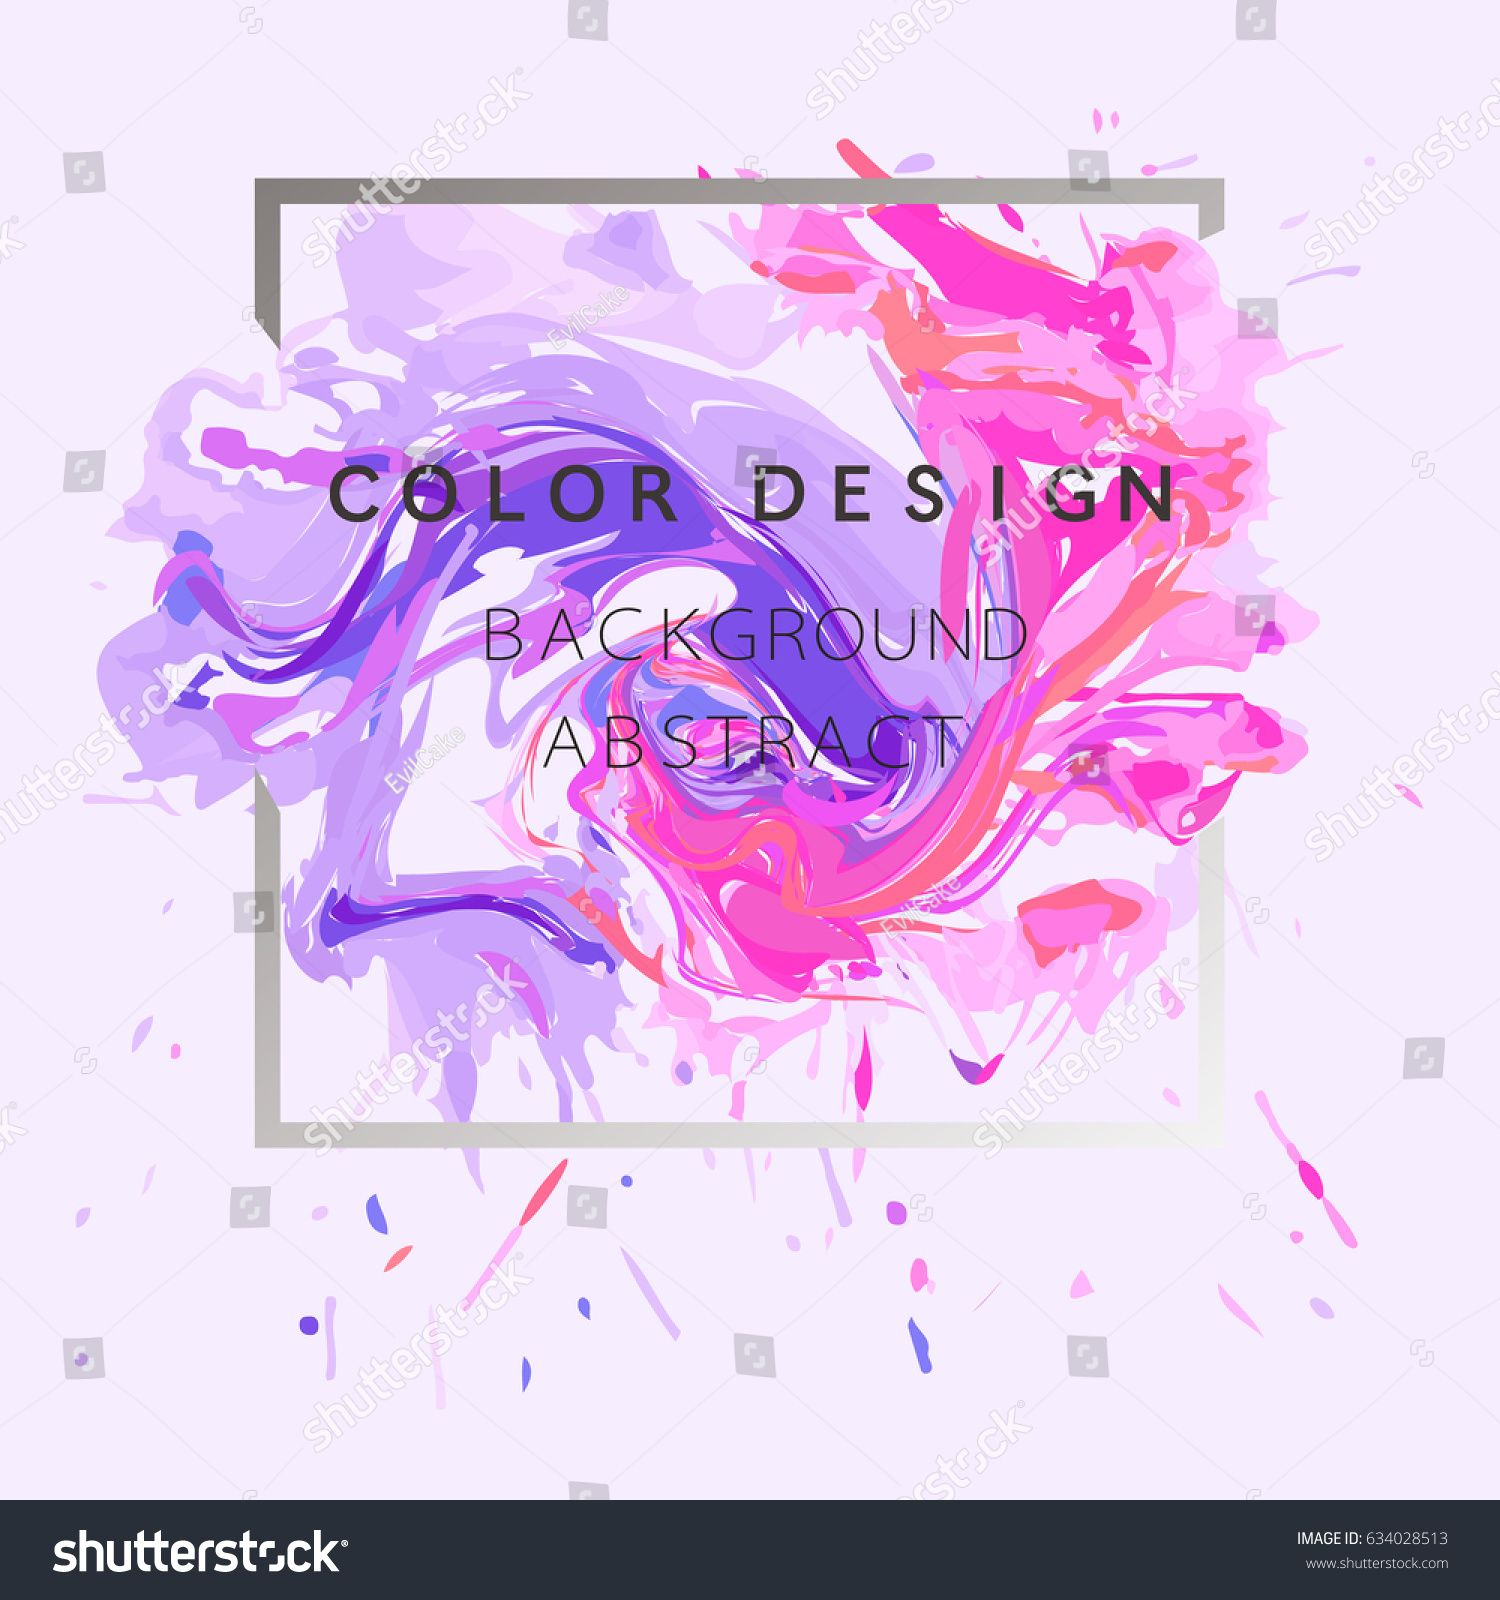 Art Abstract Background Watercolor Paint Texture Design Poster